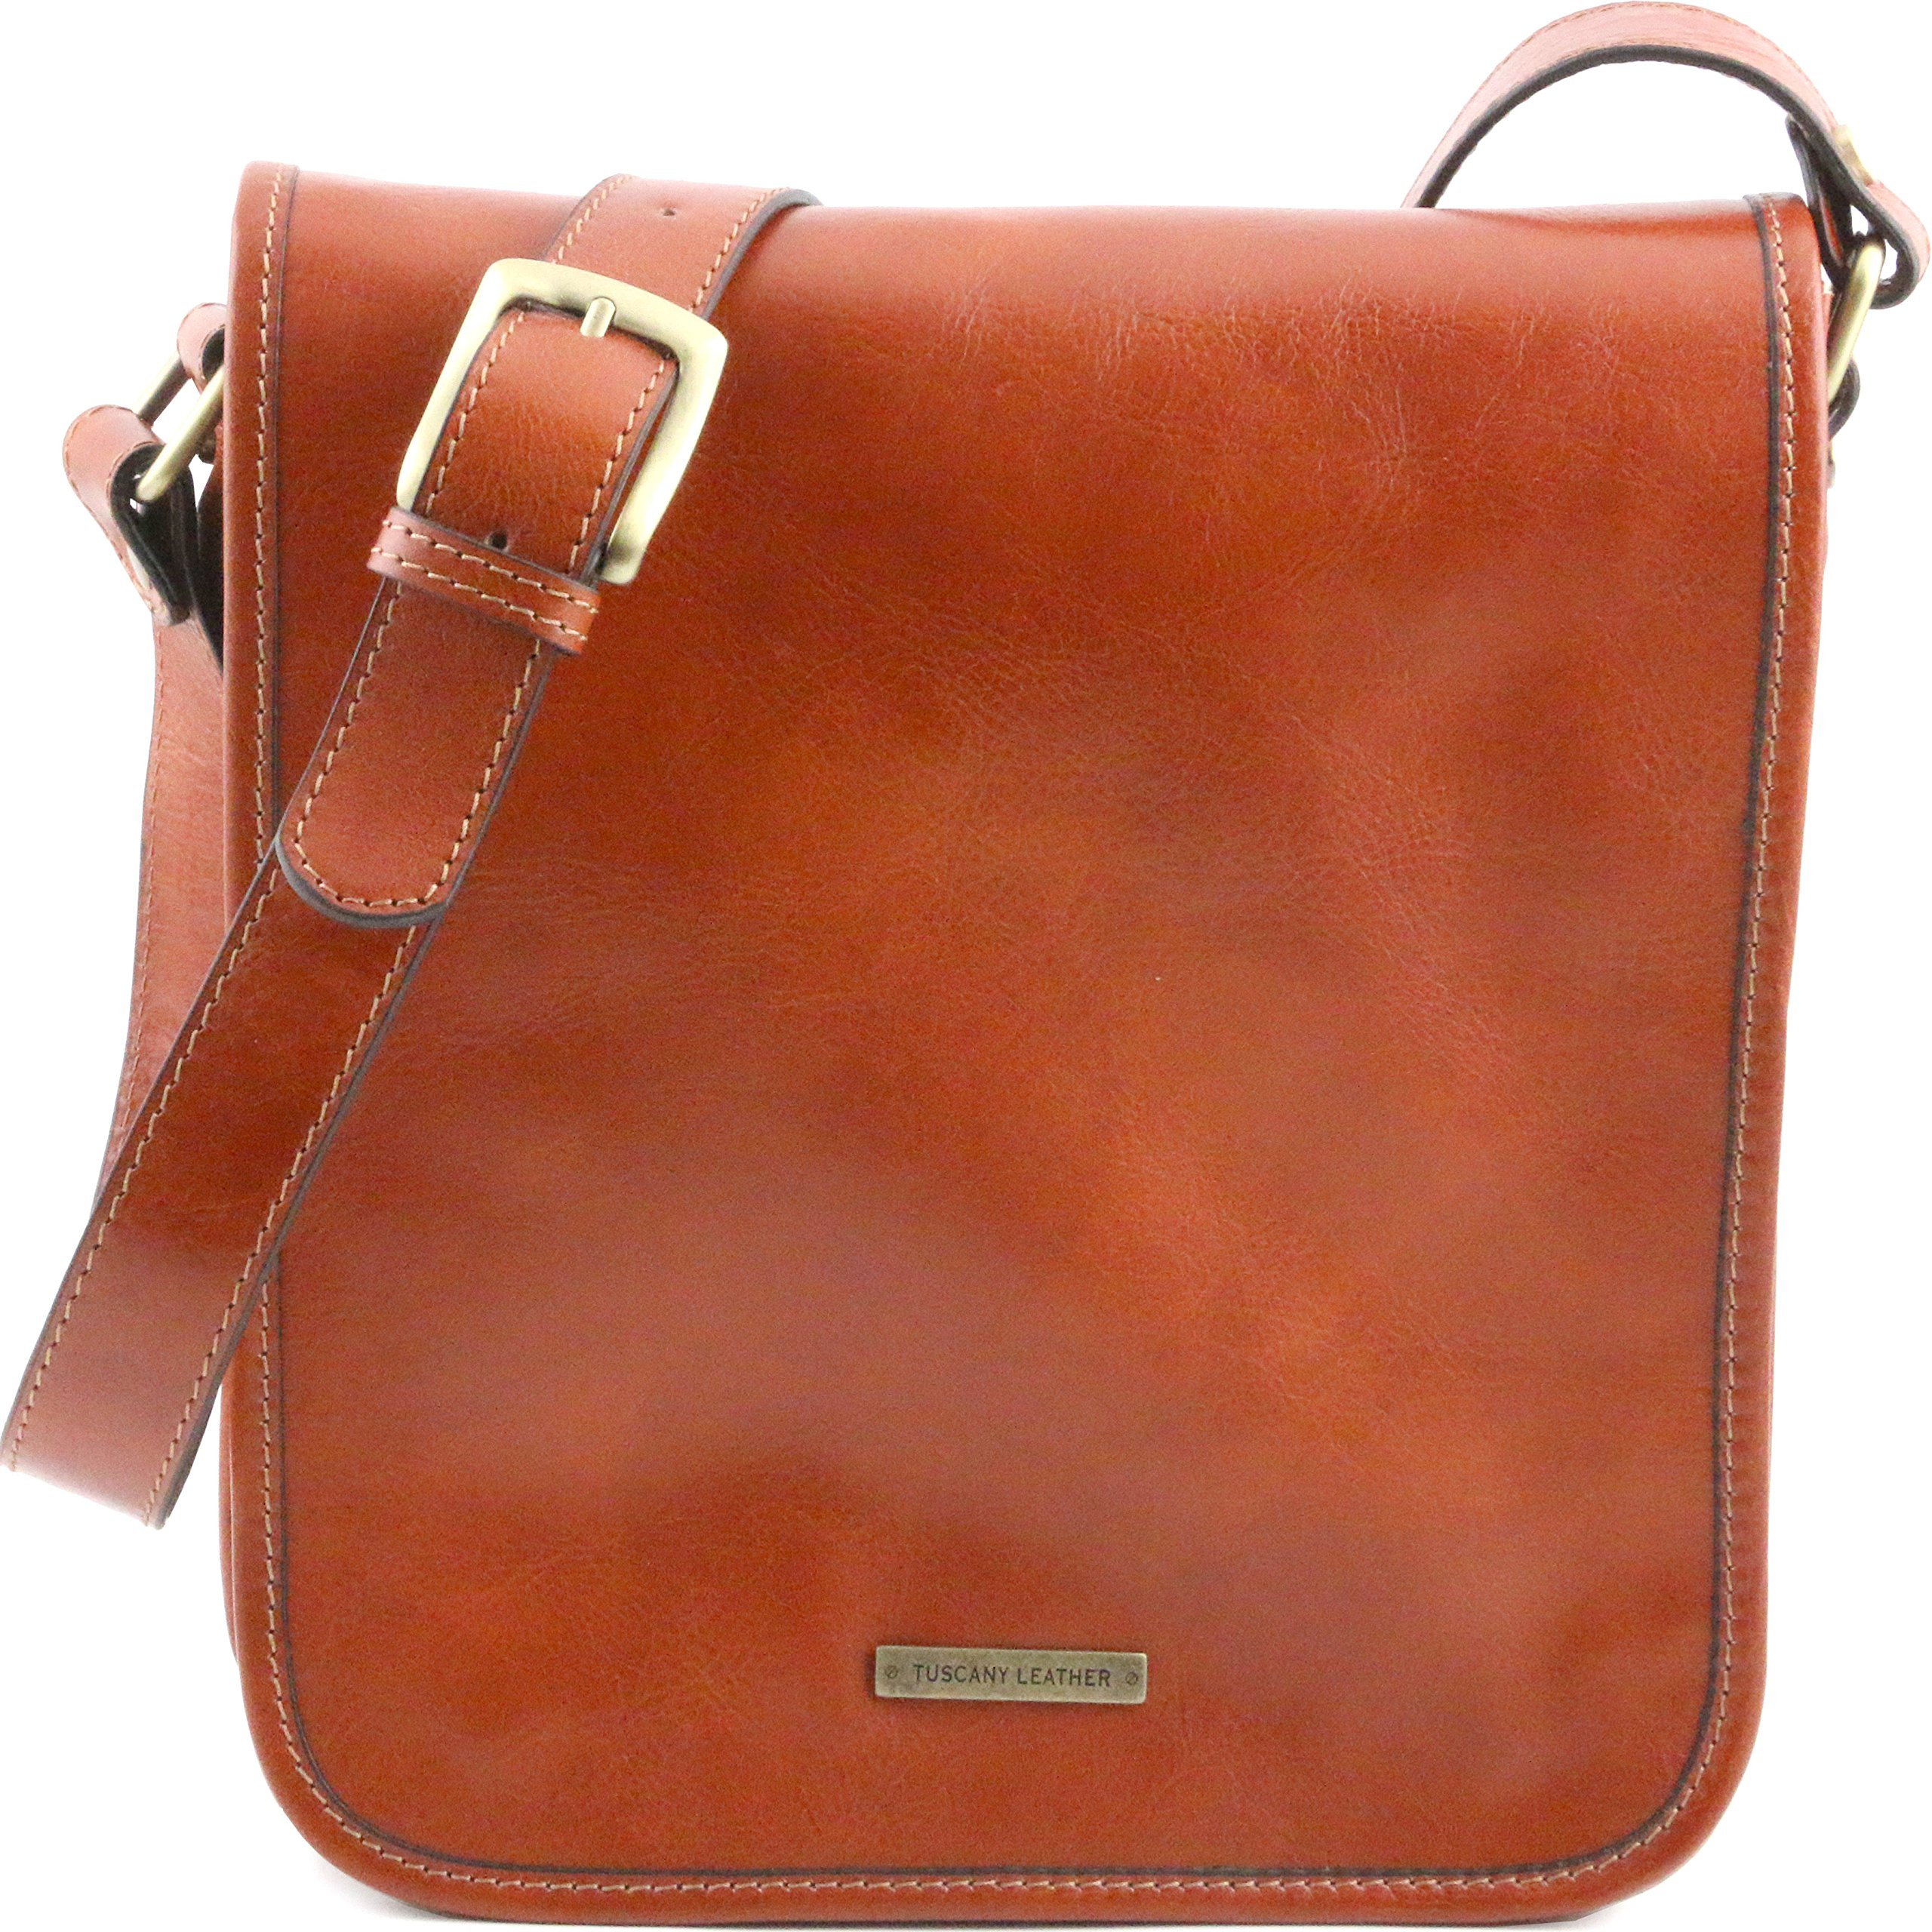 Tuscany Leather TL Messenger Two compartments leather shoulder bag Honey